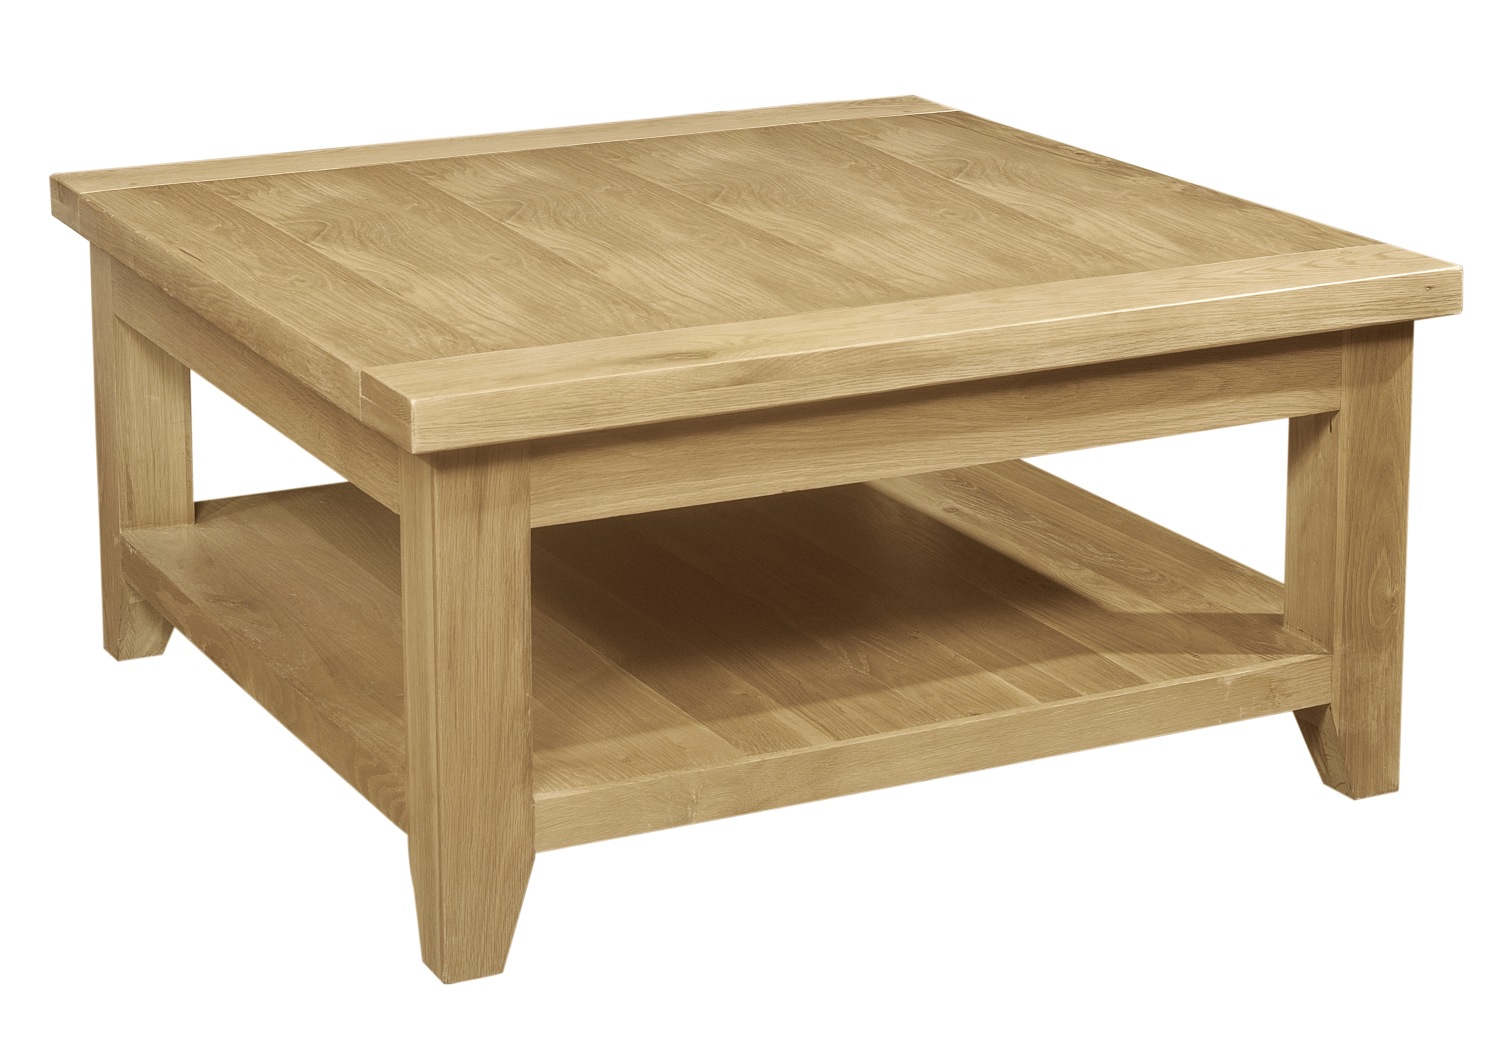 Wonderful image of Panama solid oak living room furniture square coffee table eBay with #4C331B color and 1500x1048 pixels